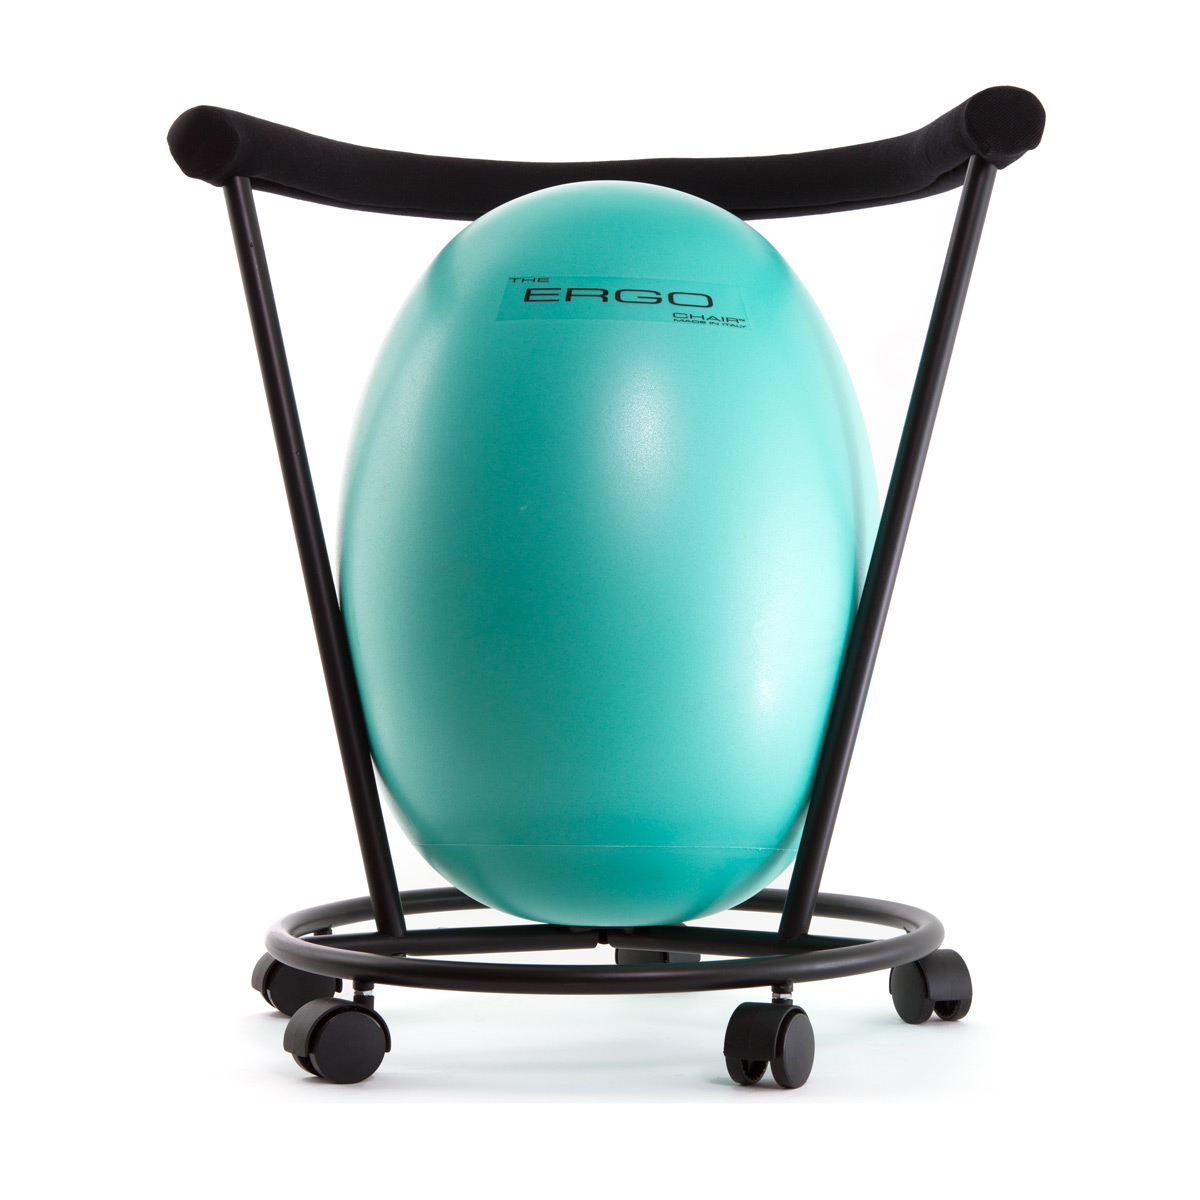 Ergonomic Ball Chair - The Ergo Chair